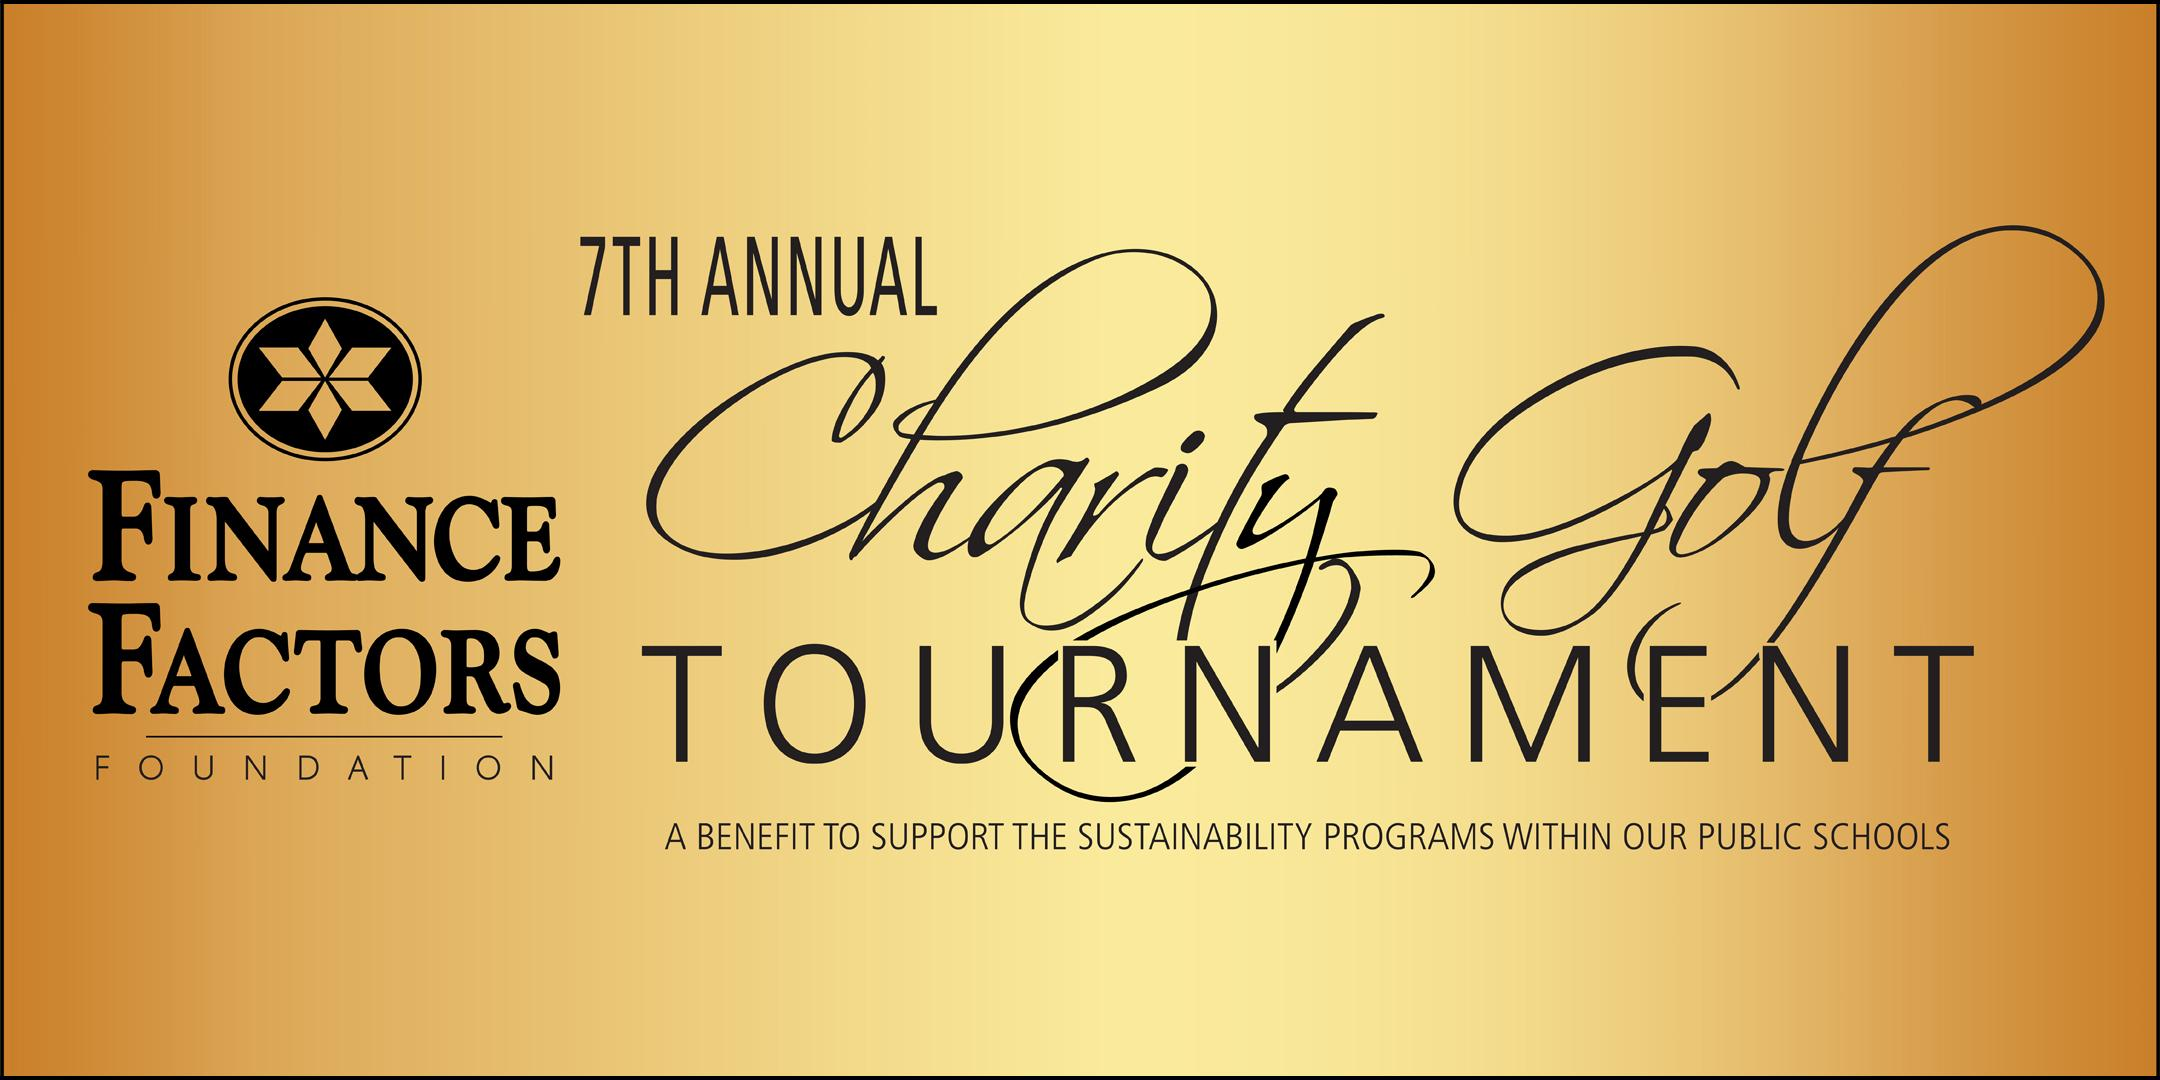 Finance Factors Foundation 7th Annual Charity Golf Tournament